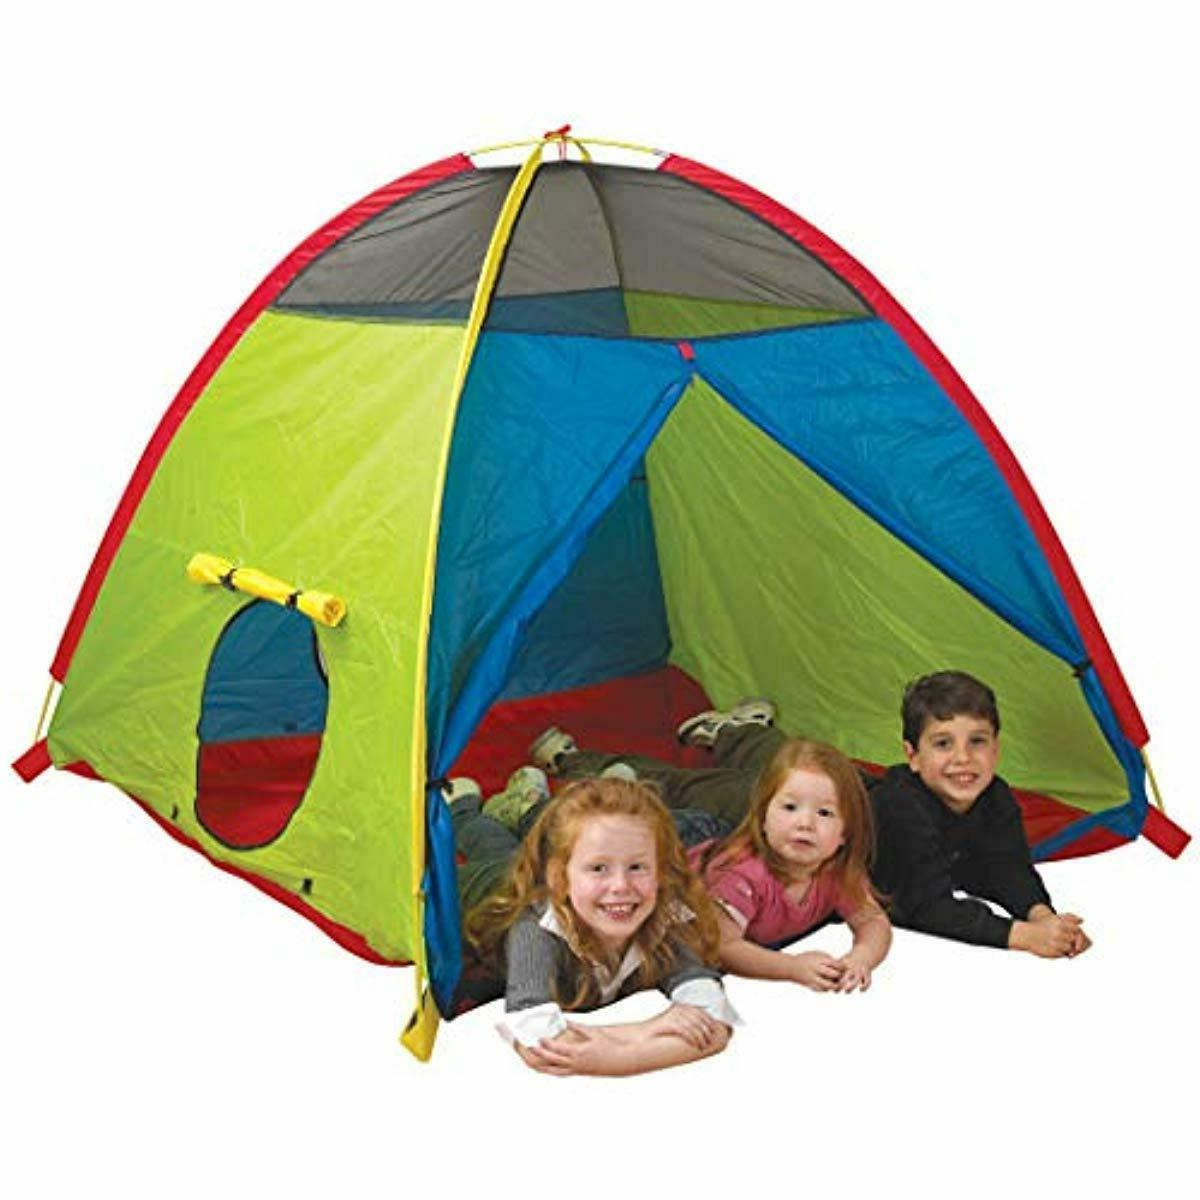 40205 super duper 4 kids playhouse tent